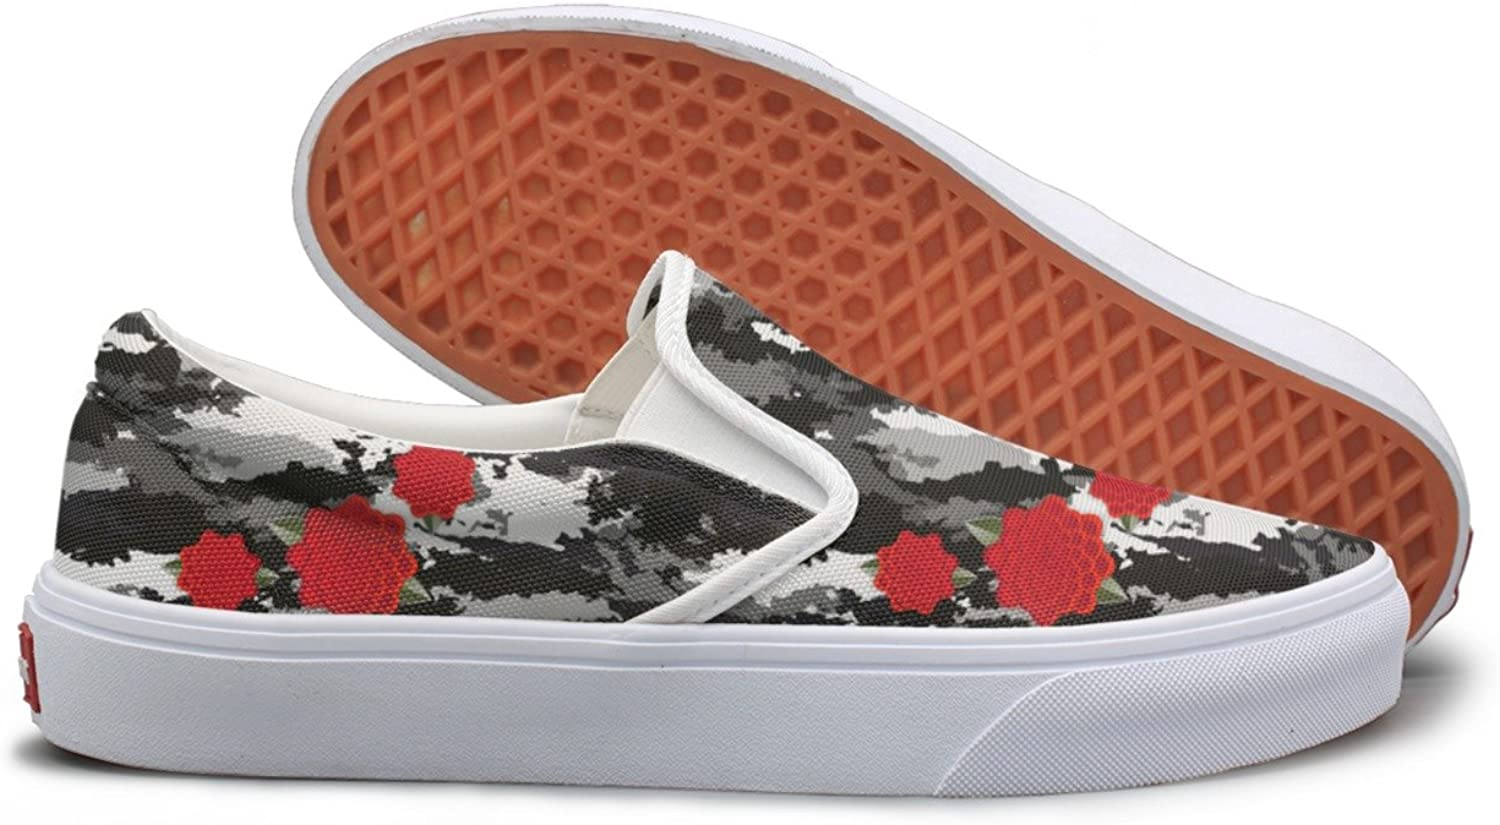 SEERTED Camouflage Army Flowers Canvas Sneakers for Women